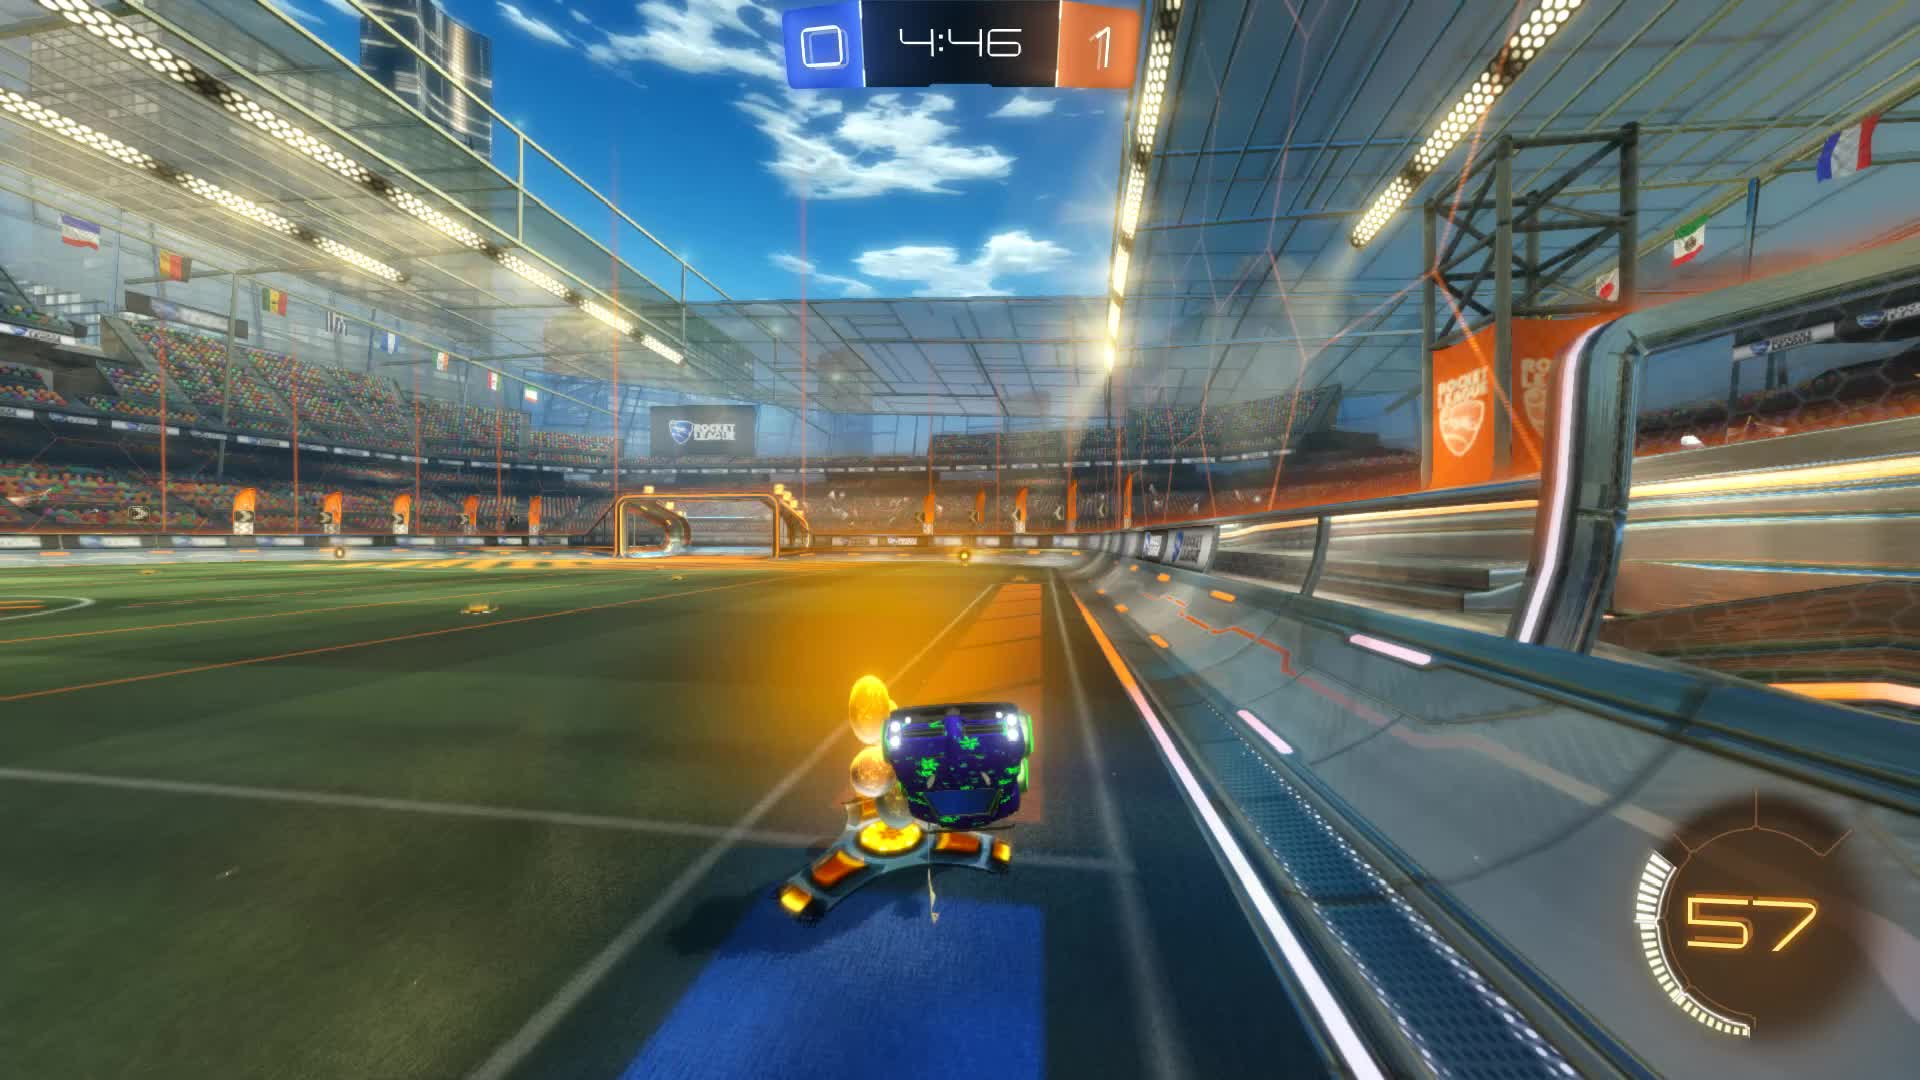 Gif Your Game, GifYourGame, Goal, Rocket League, RocketLeague, tangy ^-^, Goal 2: tangy ^-^ GIFs